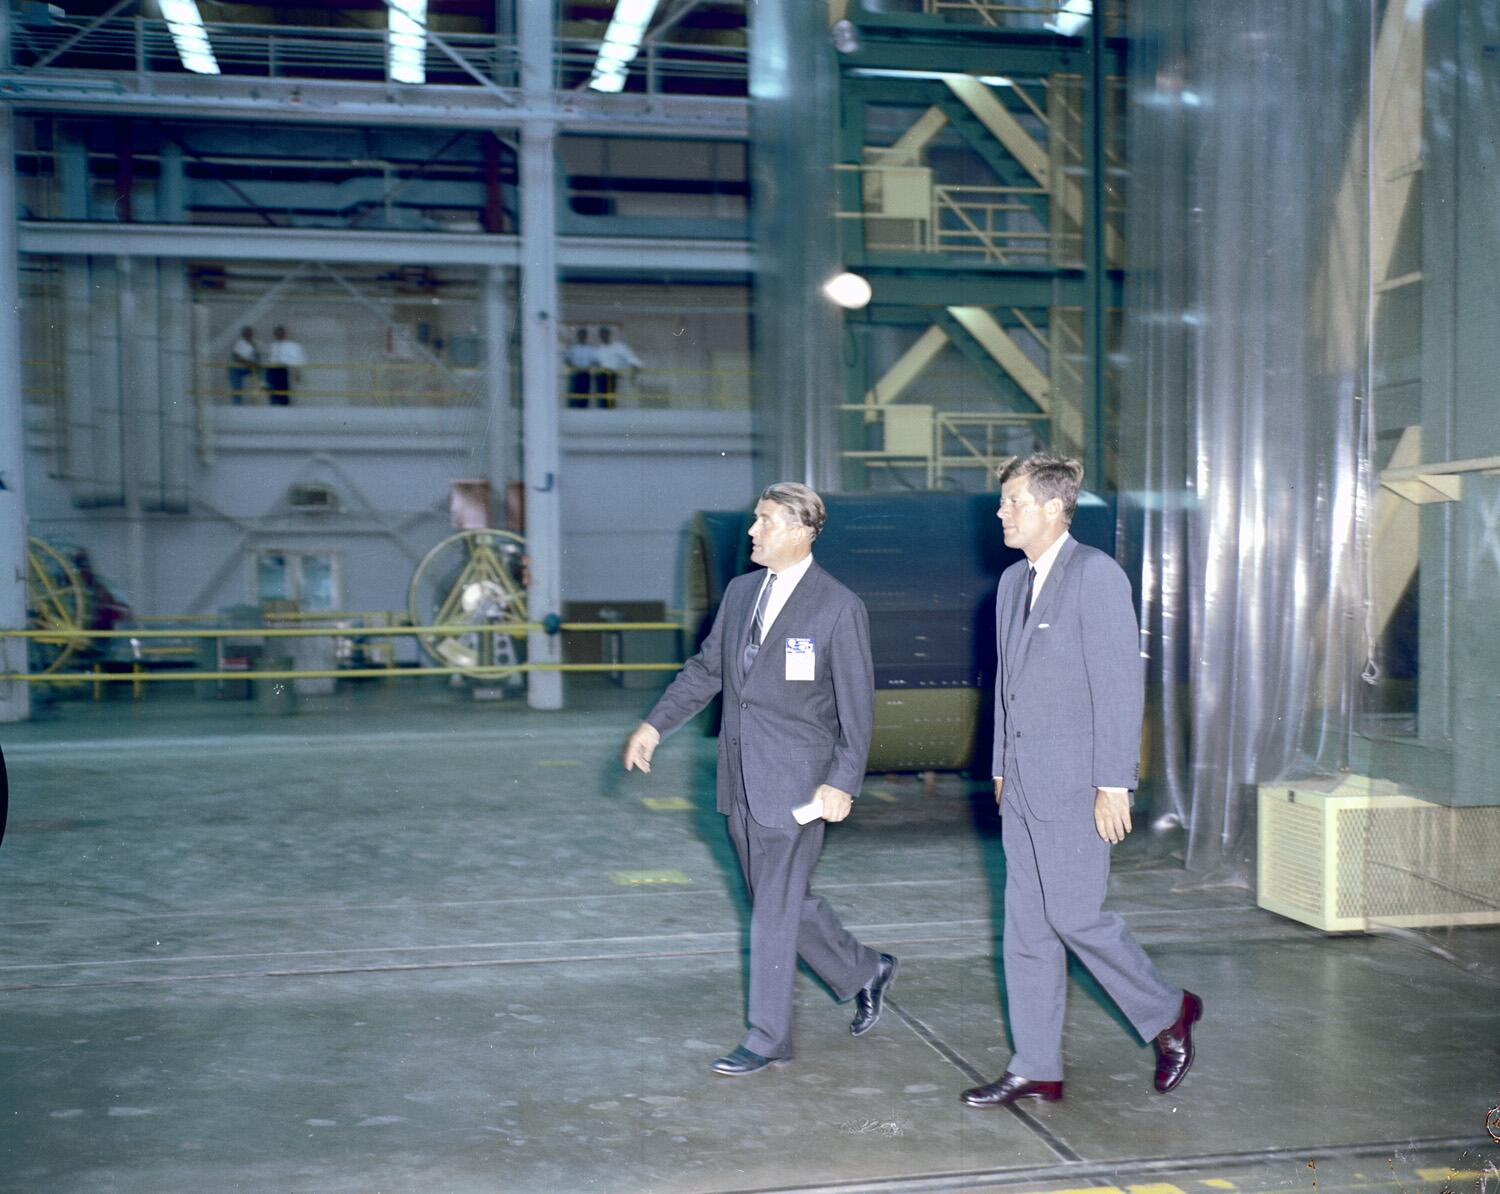 #JFK and von Braun inspect facilities at MSFC, September 11, 1962. Kennedy was being updated on Apollo program. http://t.co/BY9jtOgdEm